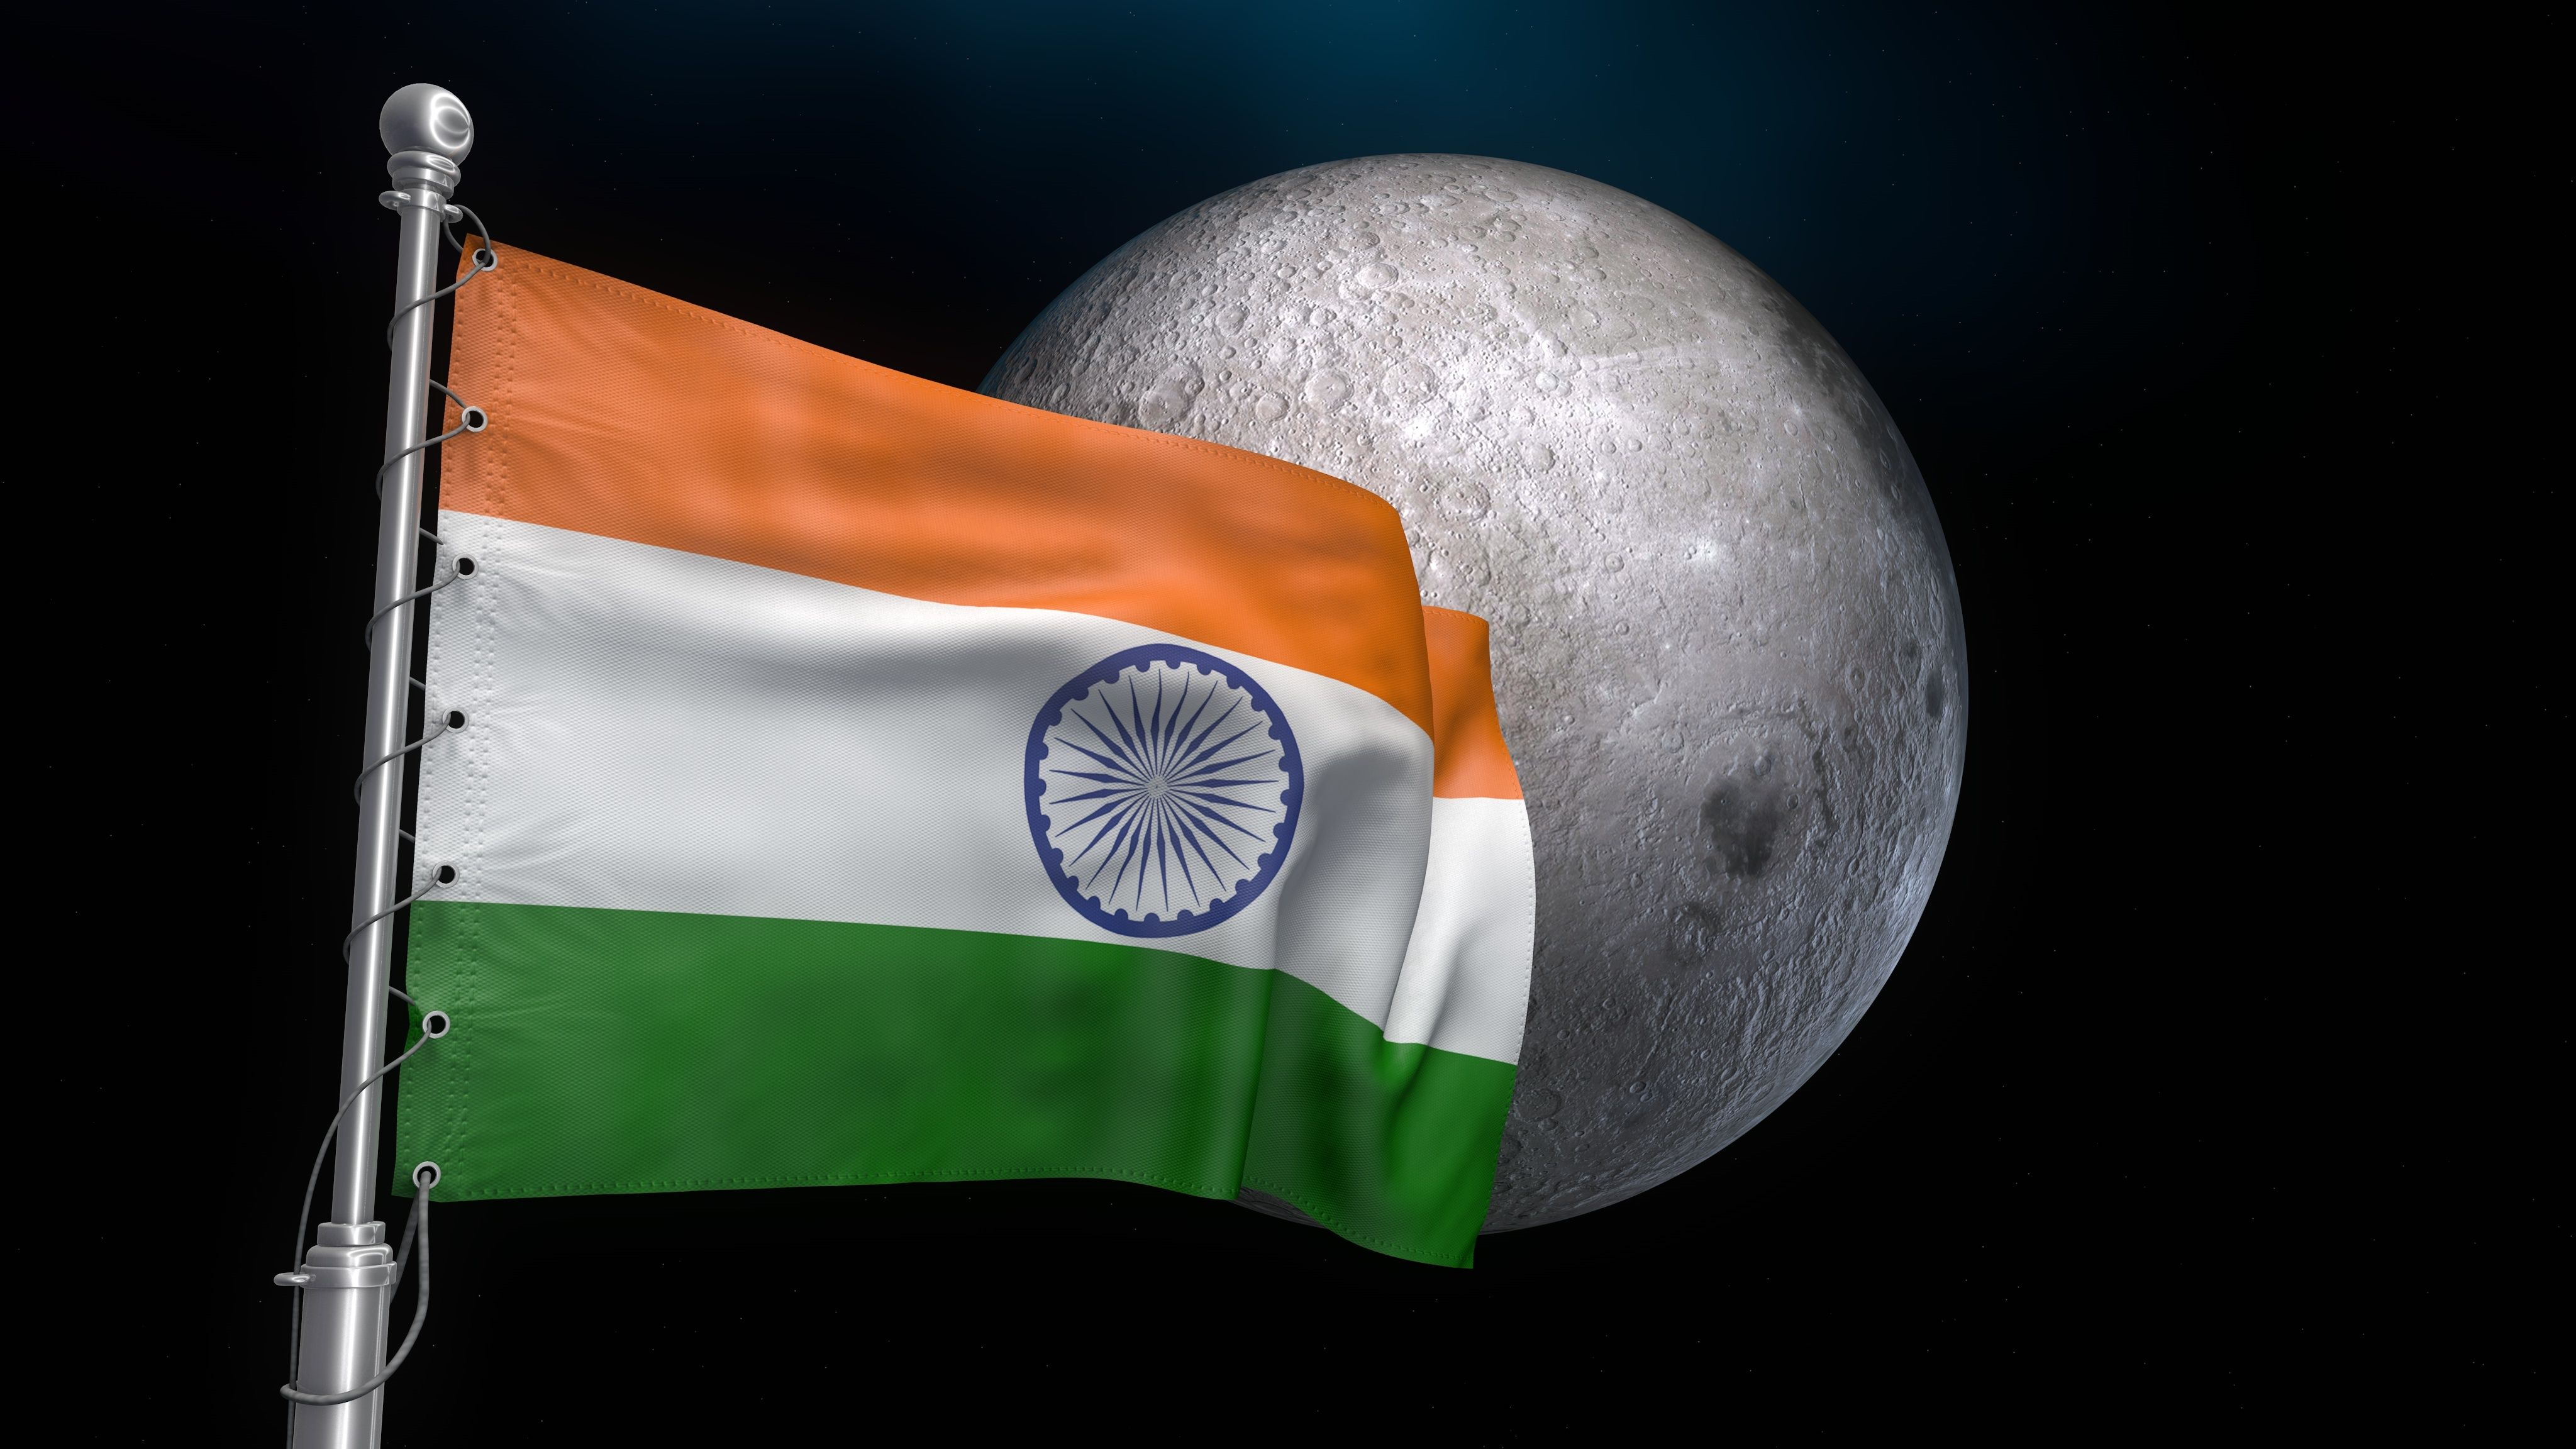 Space Agency Profiles: India's ISRO Is Noteworthy (Part I)